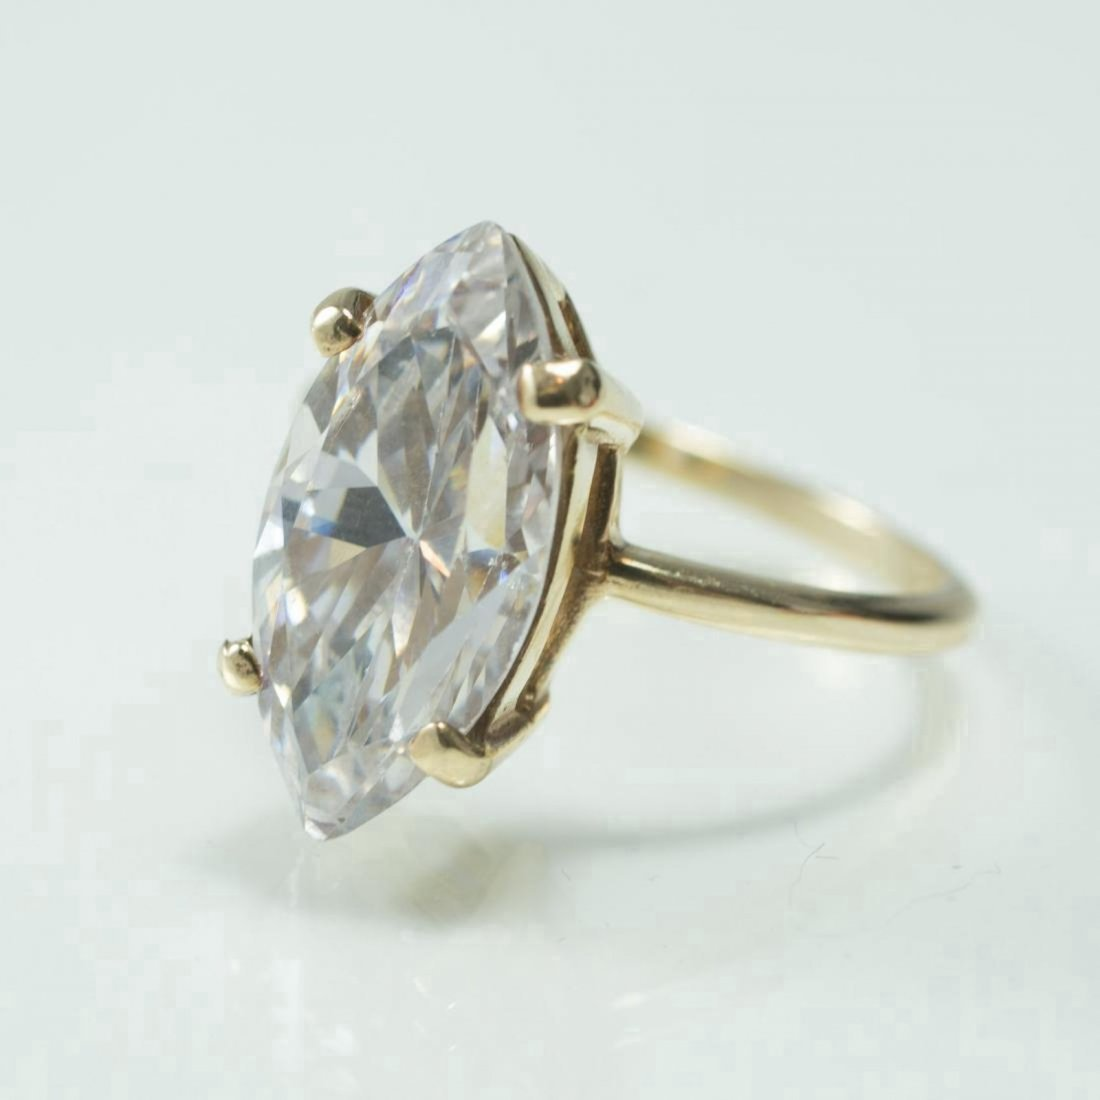 Vintage 10K Yellow Gold Cubic Zirconia Ring, 5ct